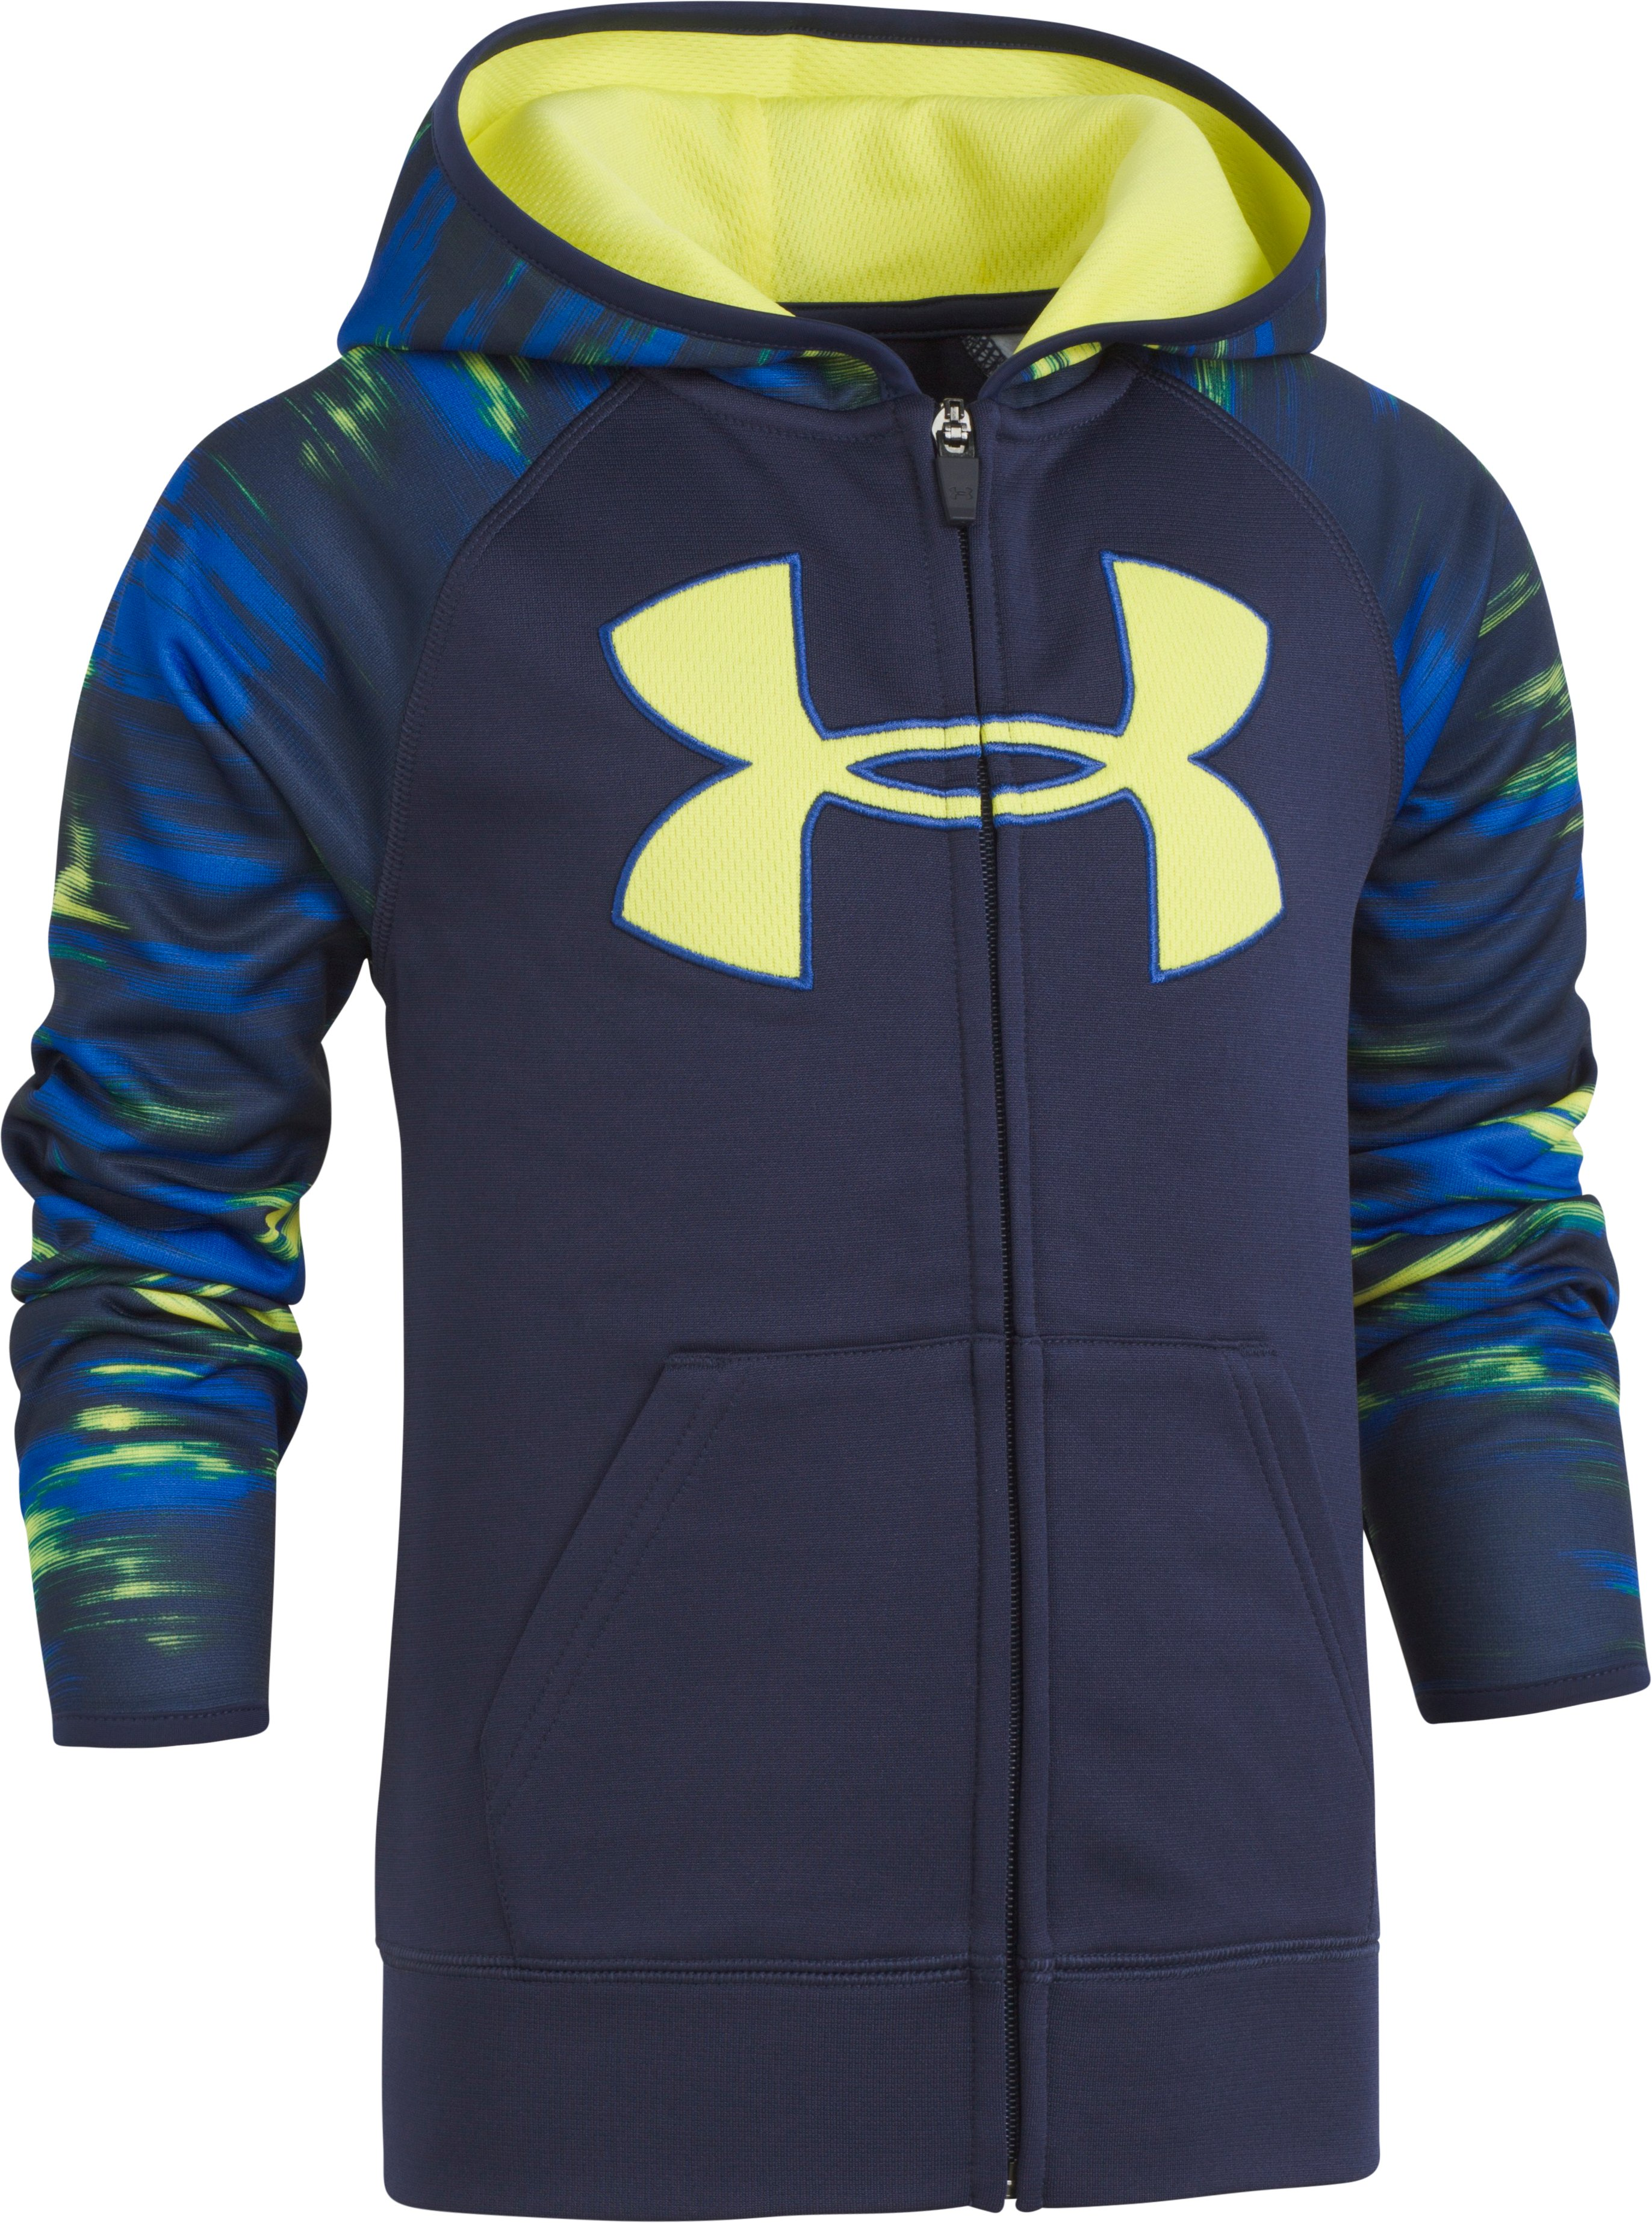 Boys' Toddler UA Accelerate Big Logo Hoodie, Midnight Navy